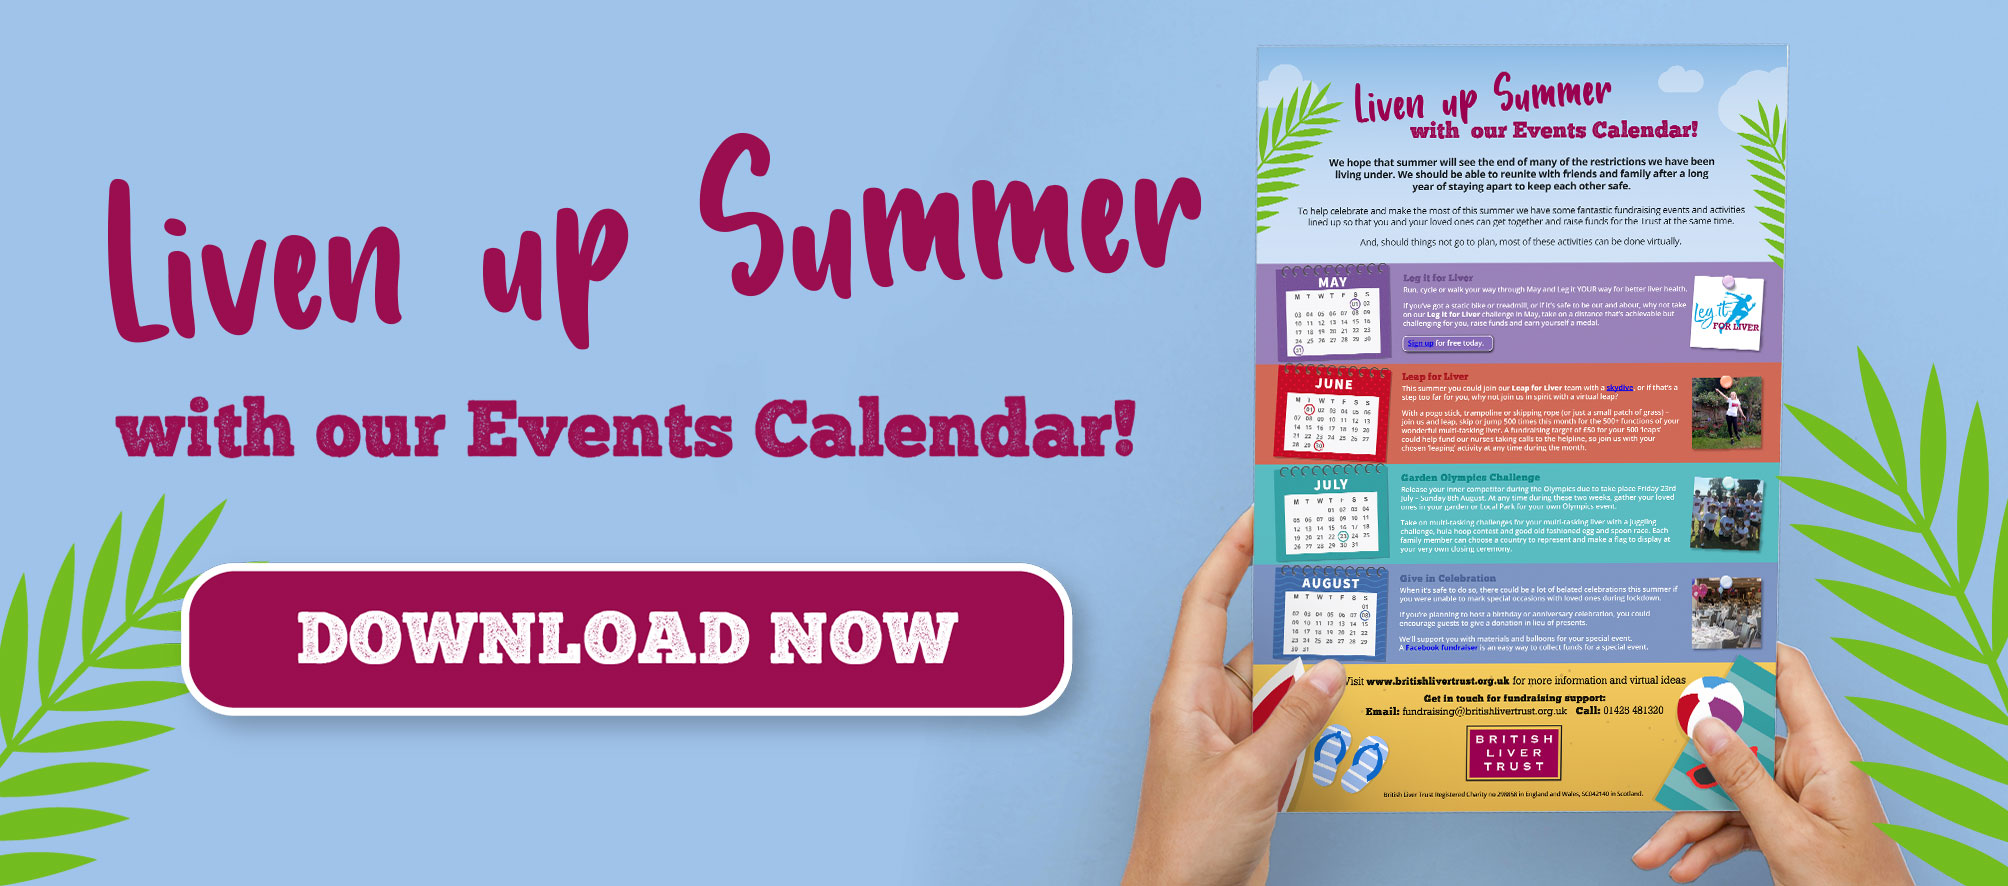 Liven Up Summer with our events calendar! Download now